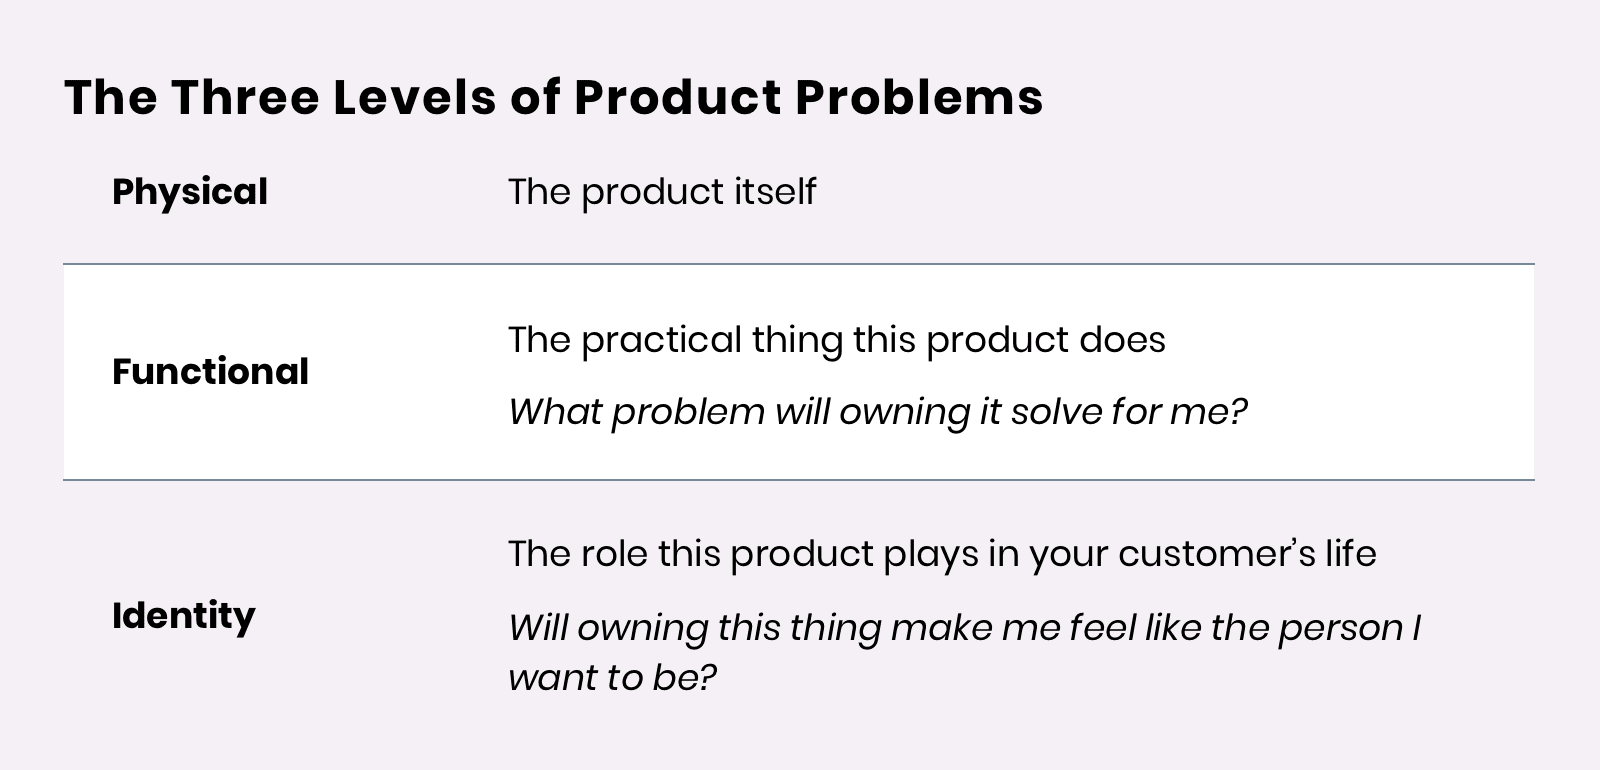 The Three Levels of Product Problems